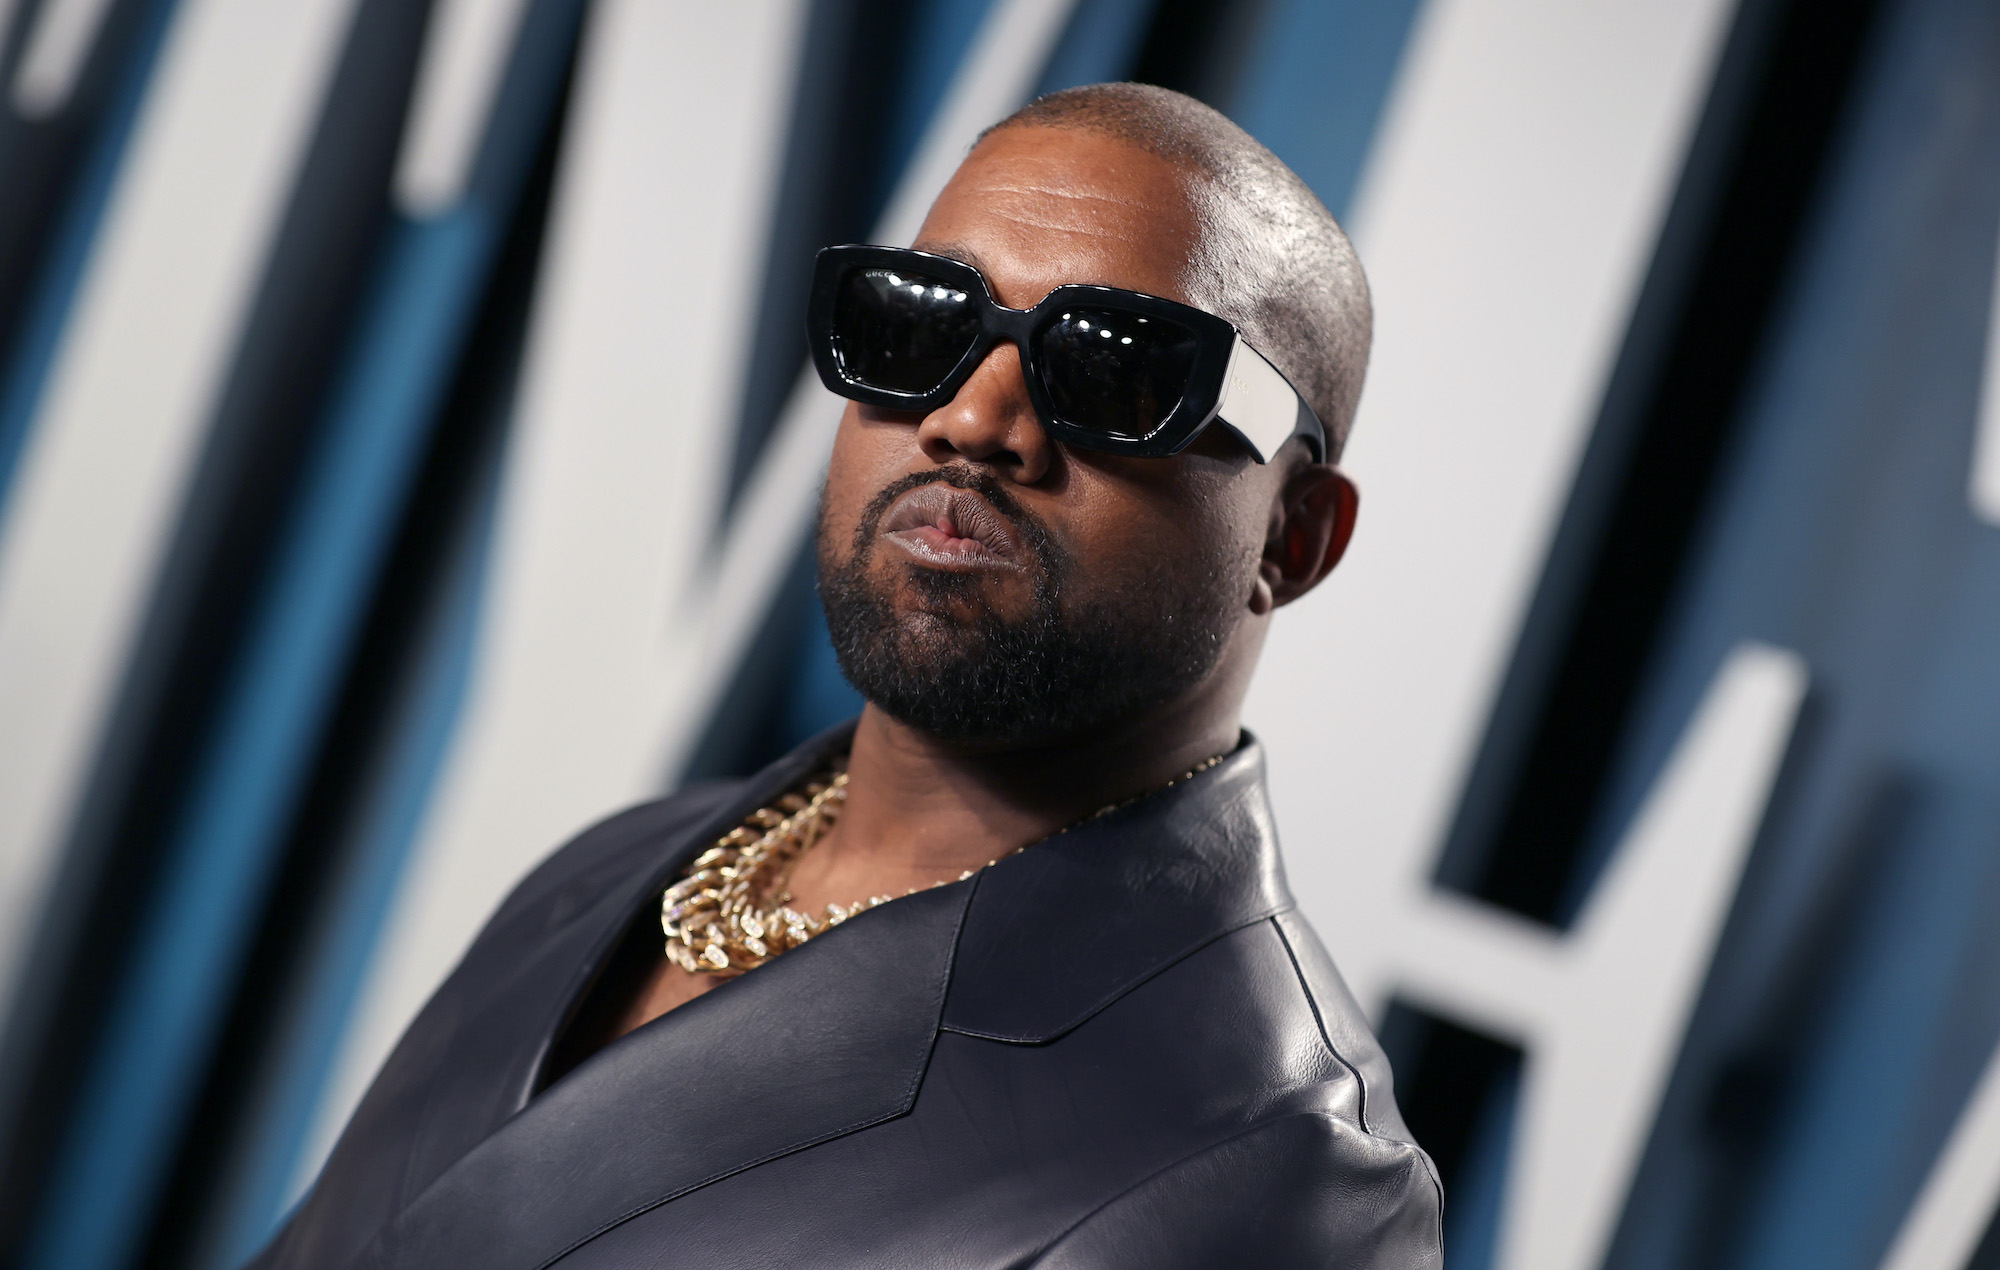 Kanye West and Gap Strike 10-Year Deal for 'Yeezy Gap' Apparel Line